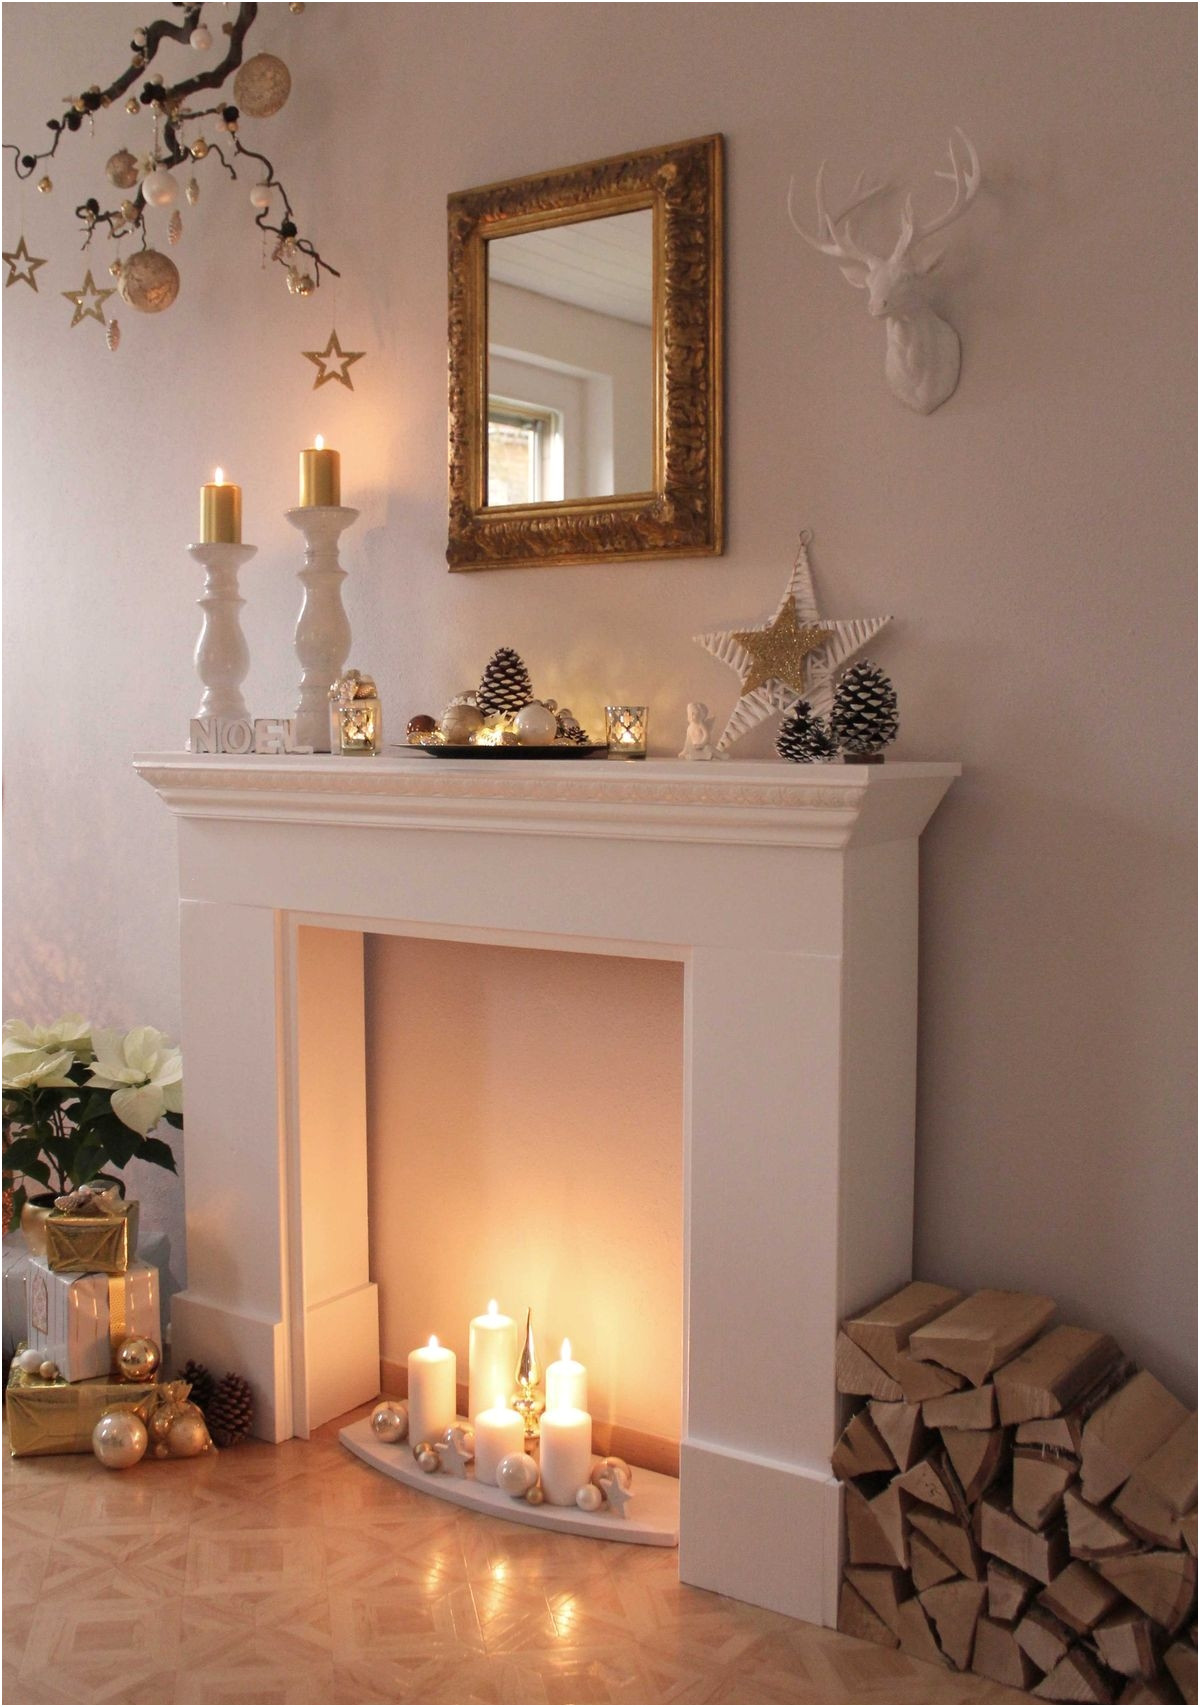 Best Of Images Of Fireplace